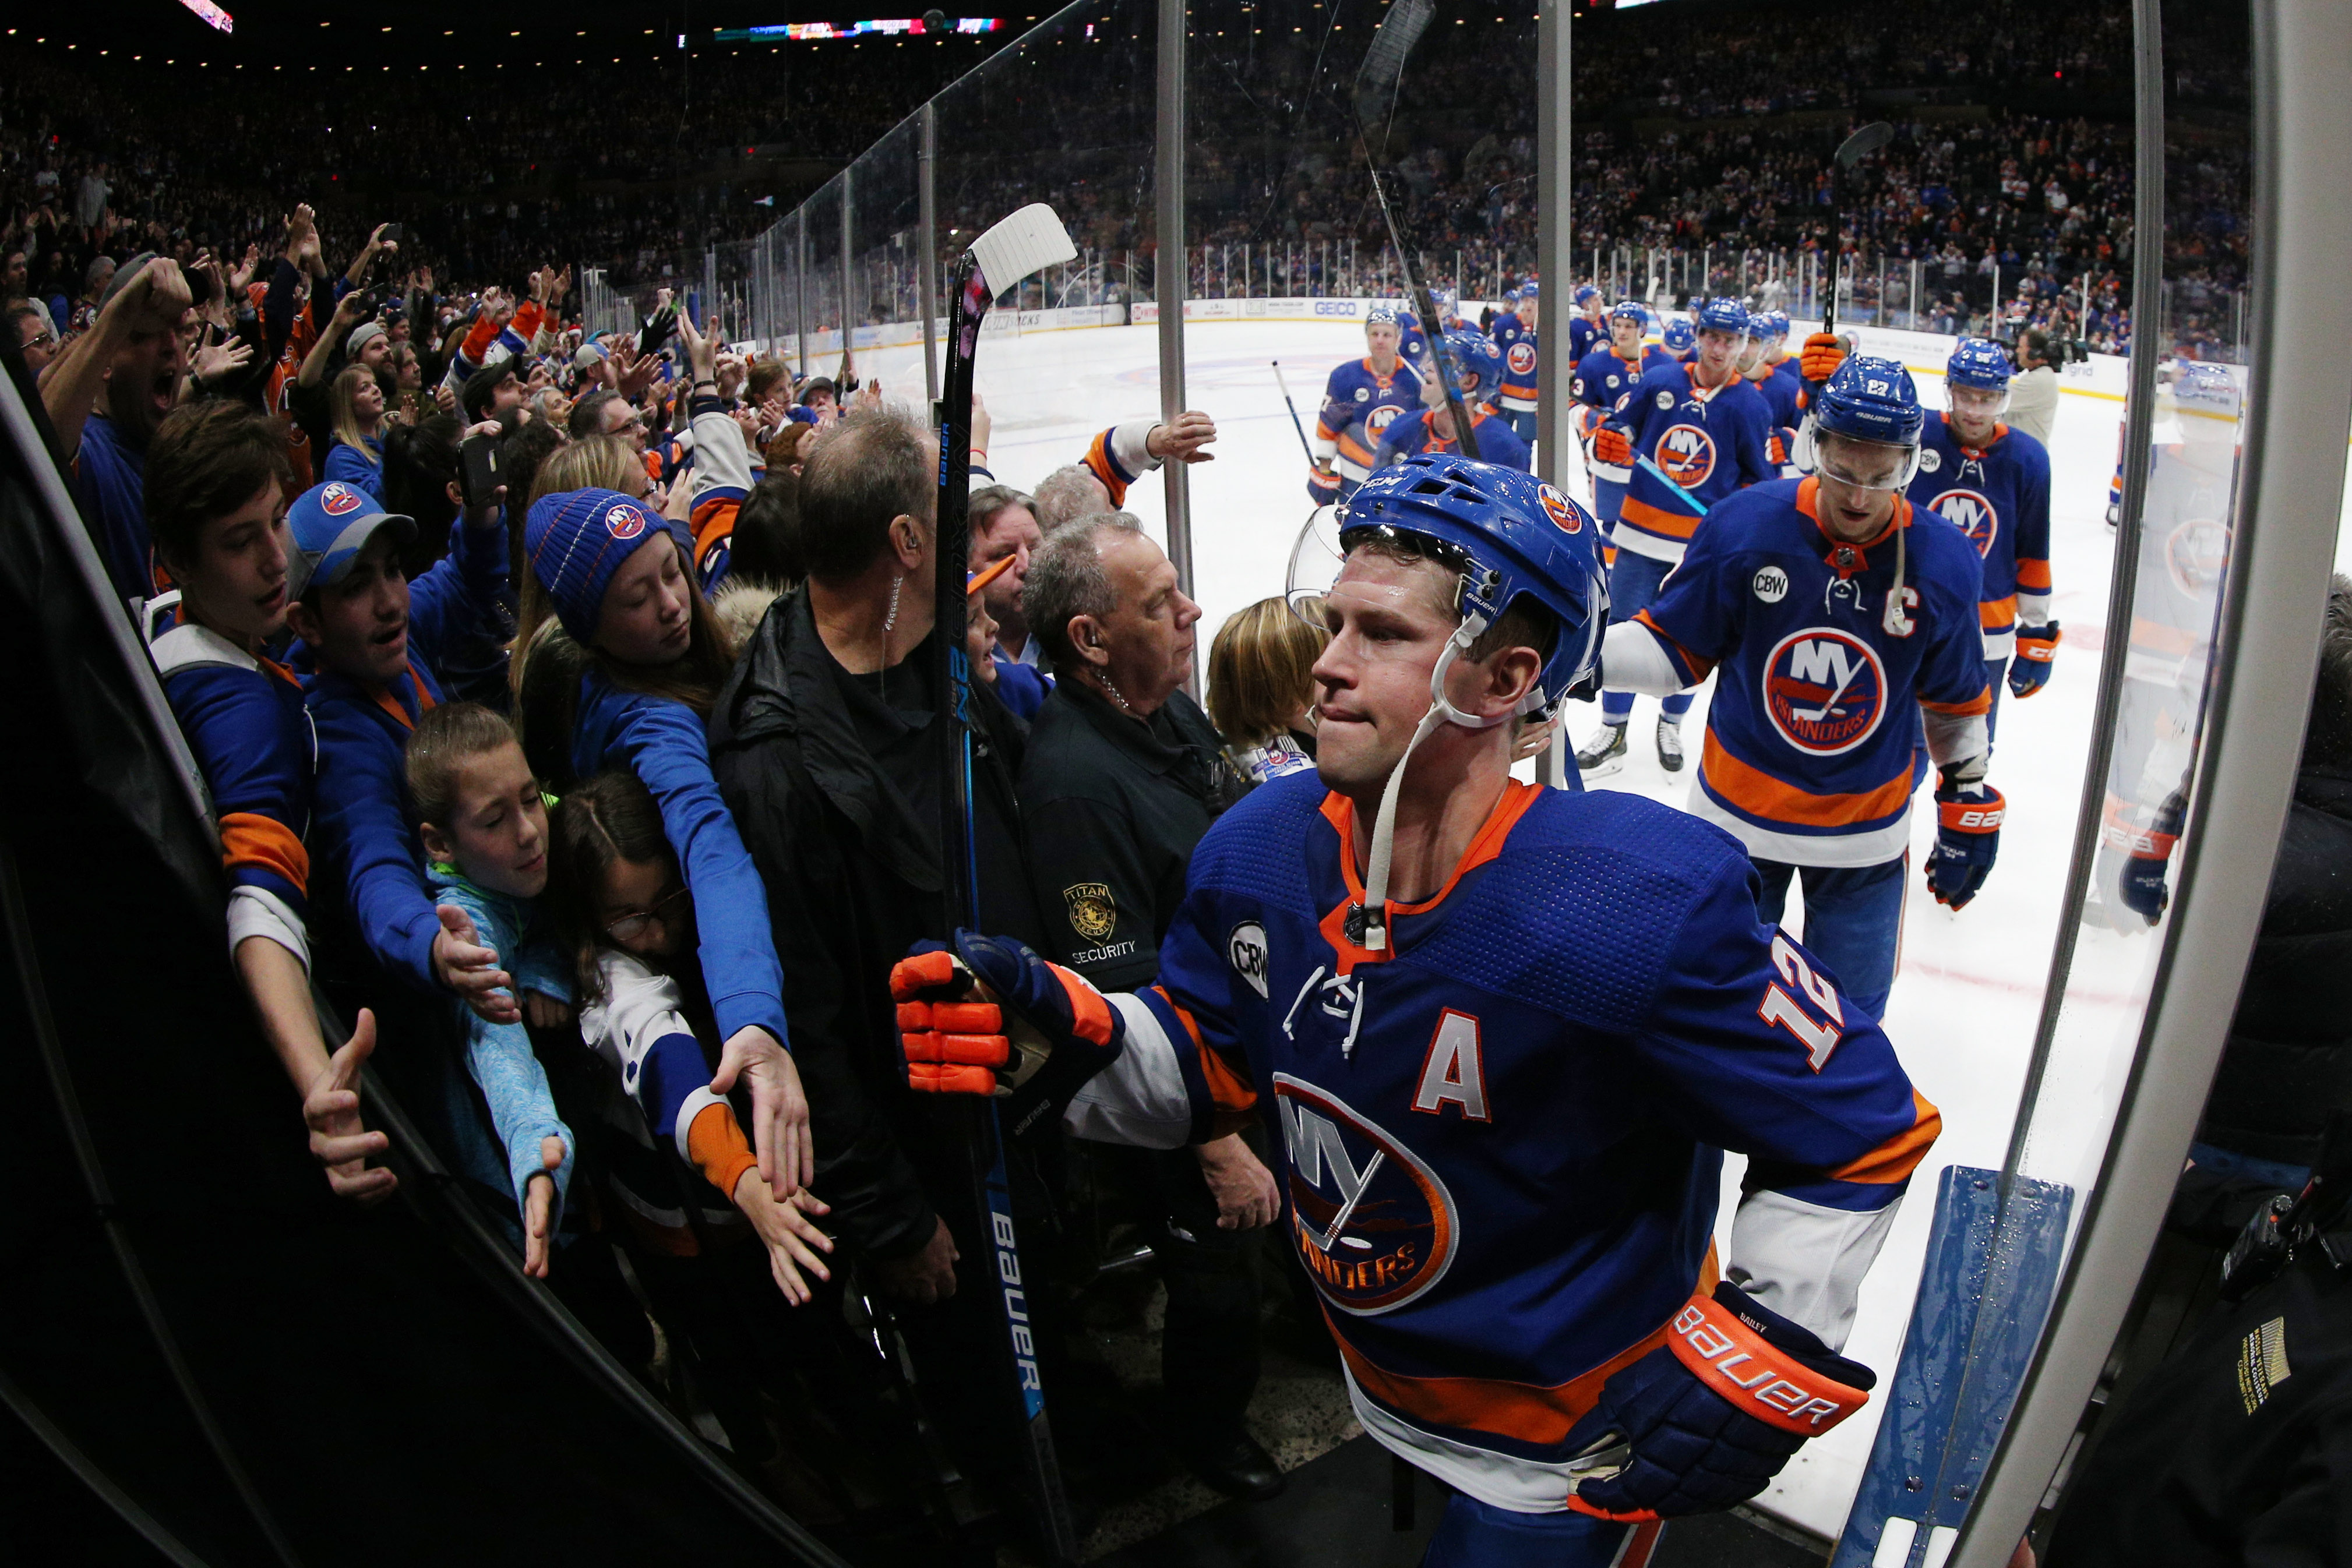 Dec 1, 2018; Uniondale, NY, USA; The New York Islanders are greeted by fans as they leave the ice after defeating the Columbus Blue Jackets at Nassau Veterans Memorial Coliseum. Mandatory Credit: Brad Penner-USA TODAY Sports